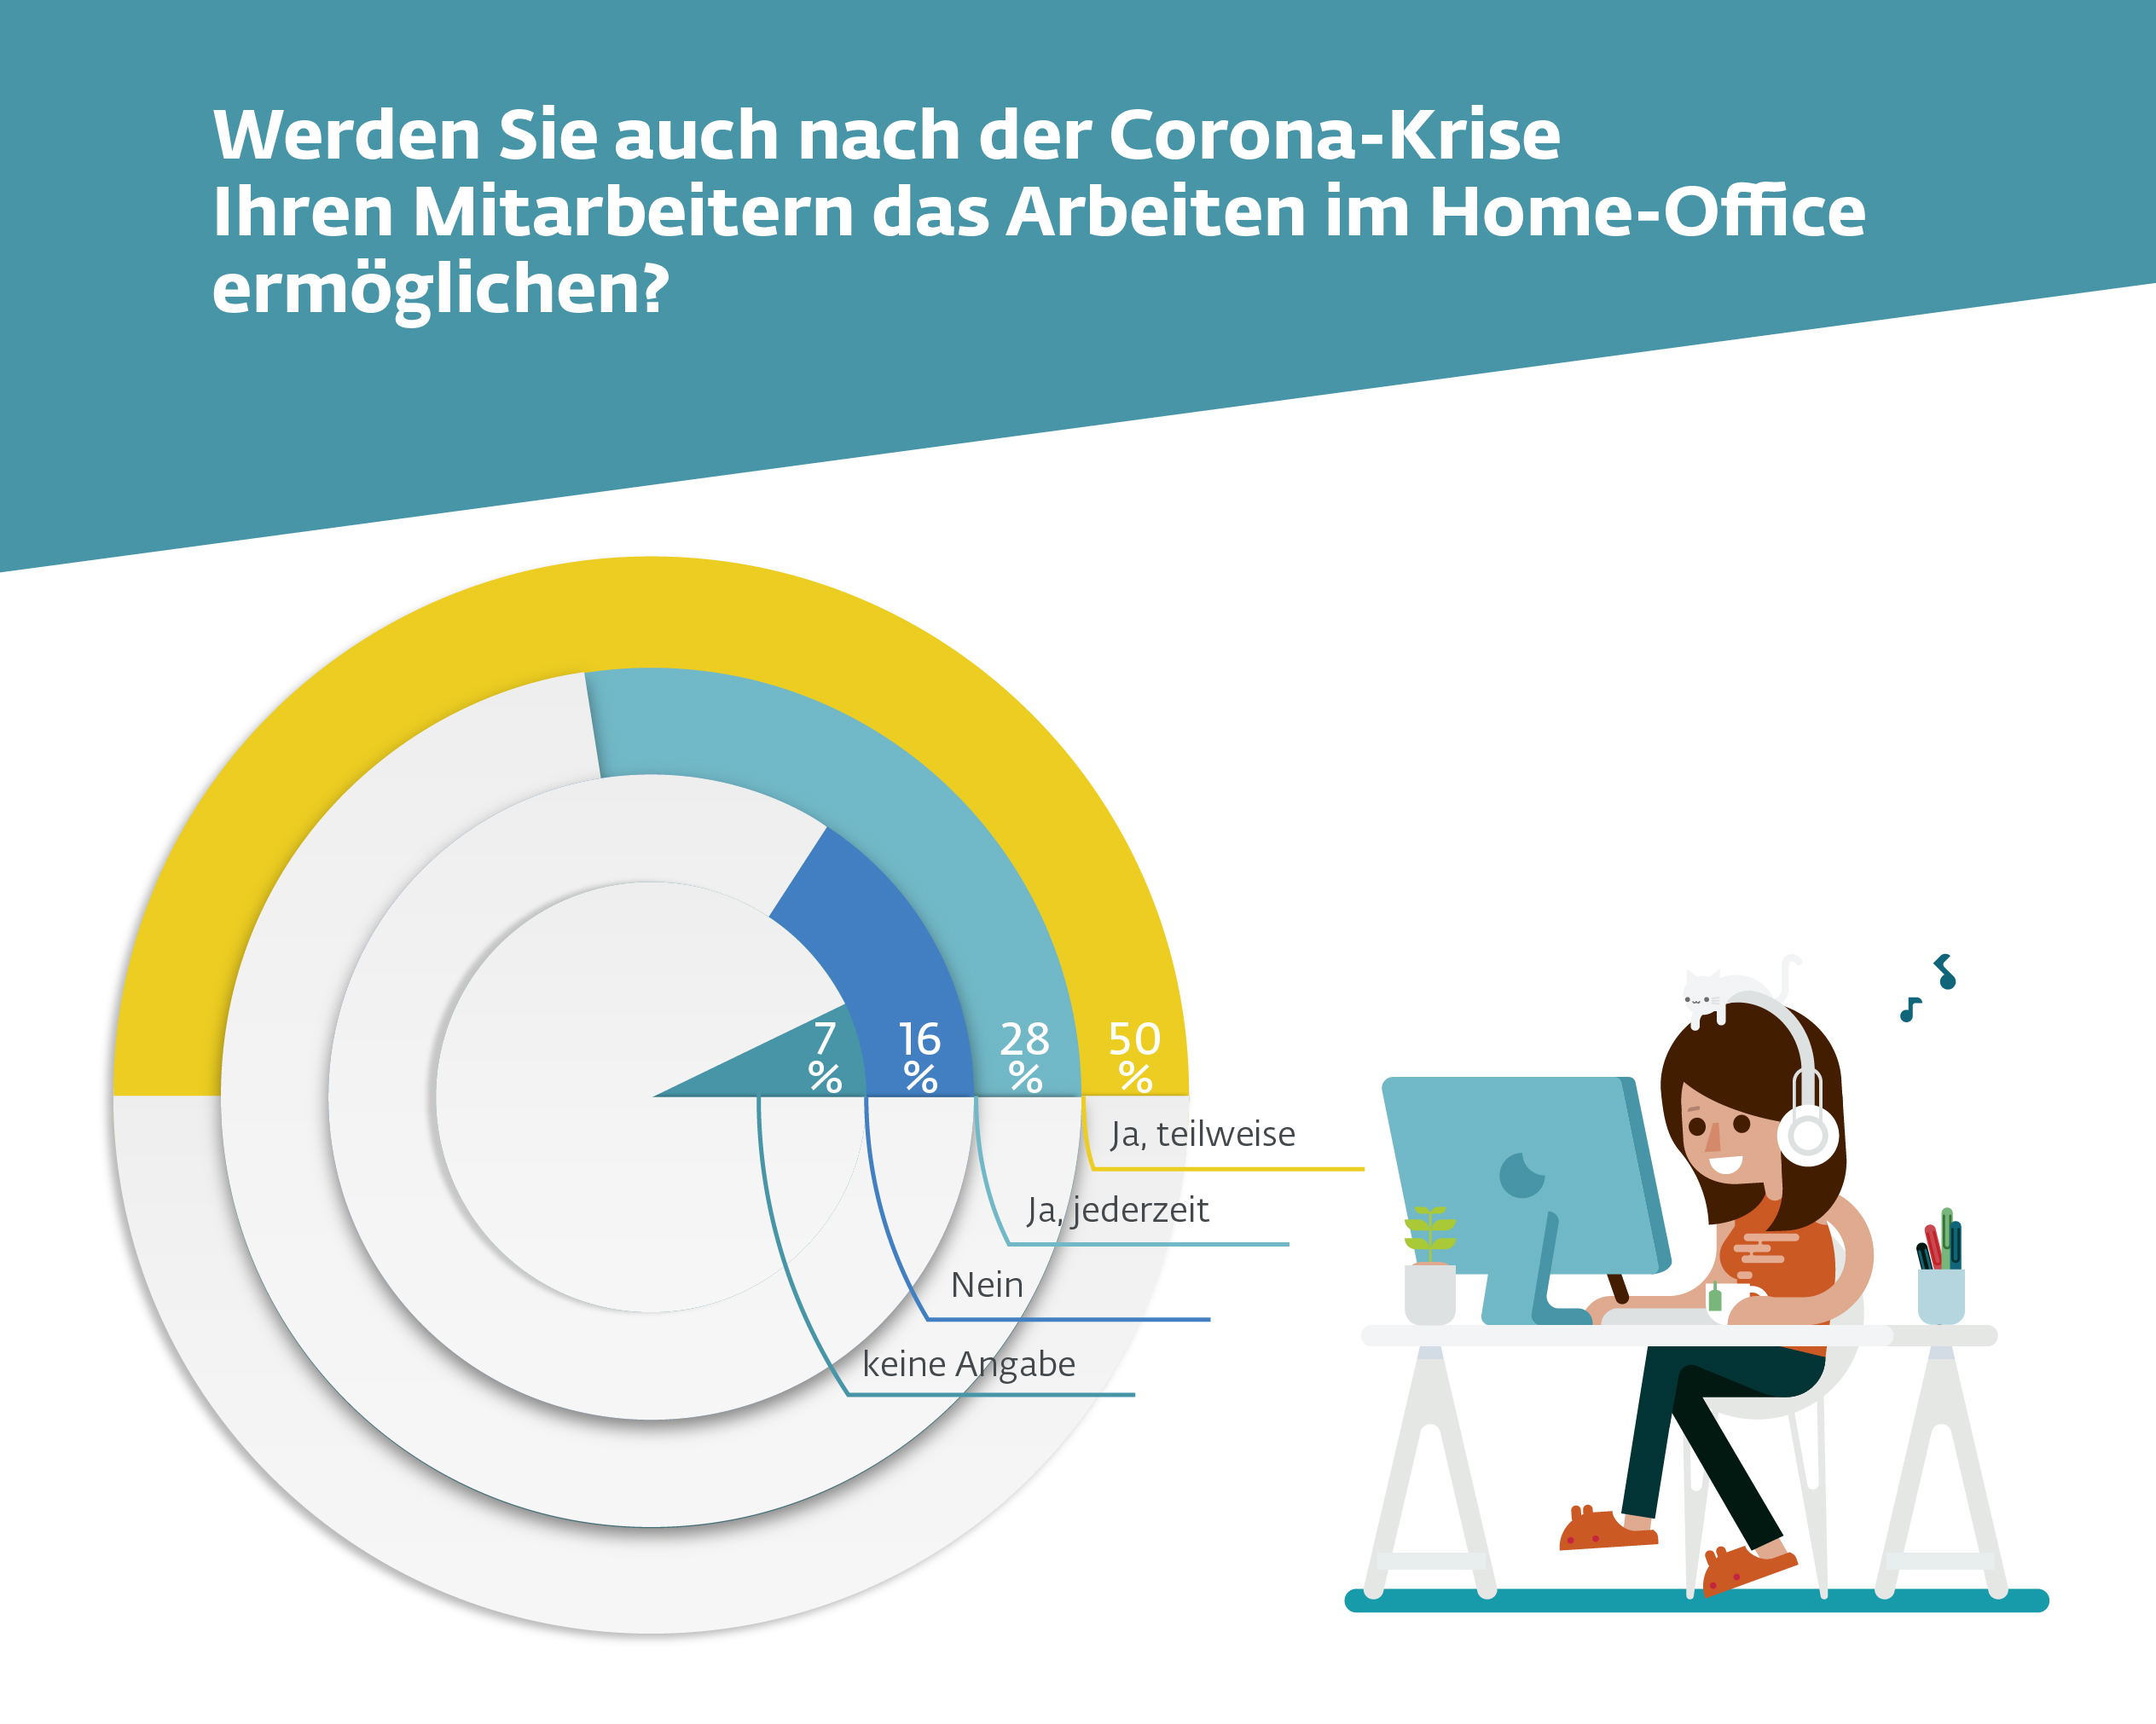 itsa 365: home office graphics, employees can also work from home after Corona